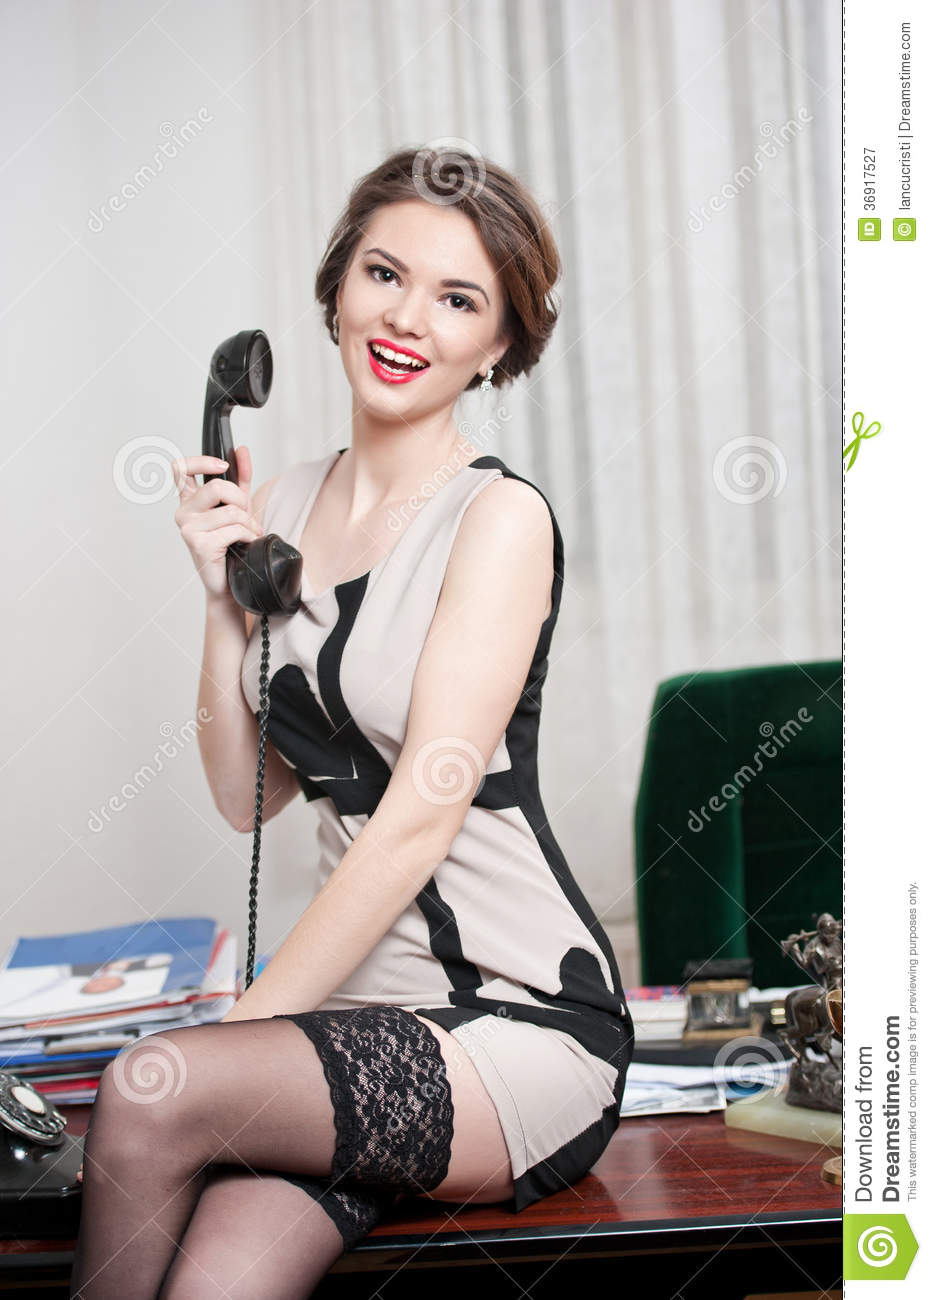 Happy Smiling Attractive Woman Wearing An Elegant Dress And Black Stockings Talking By -5167